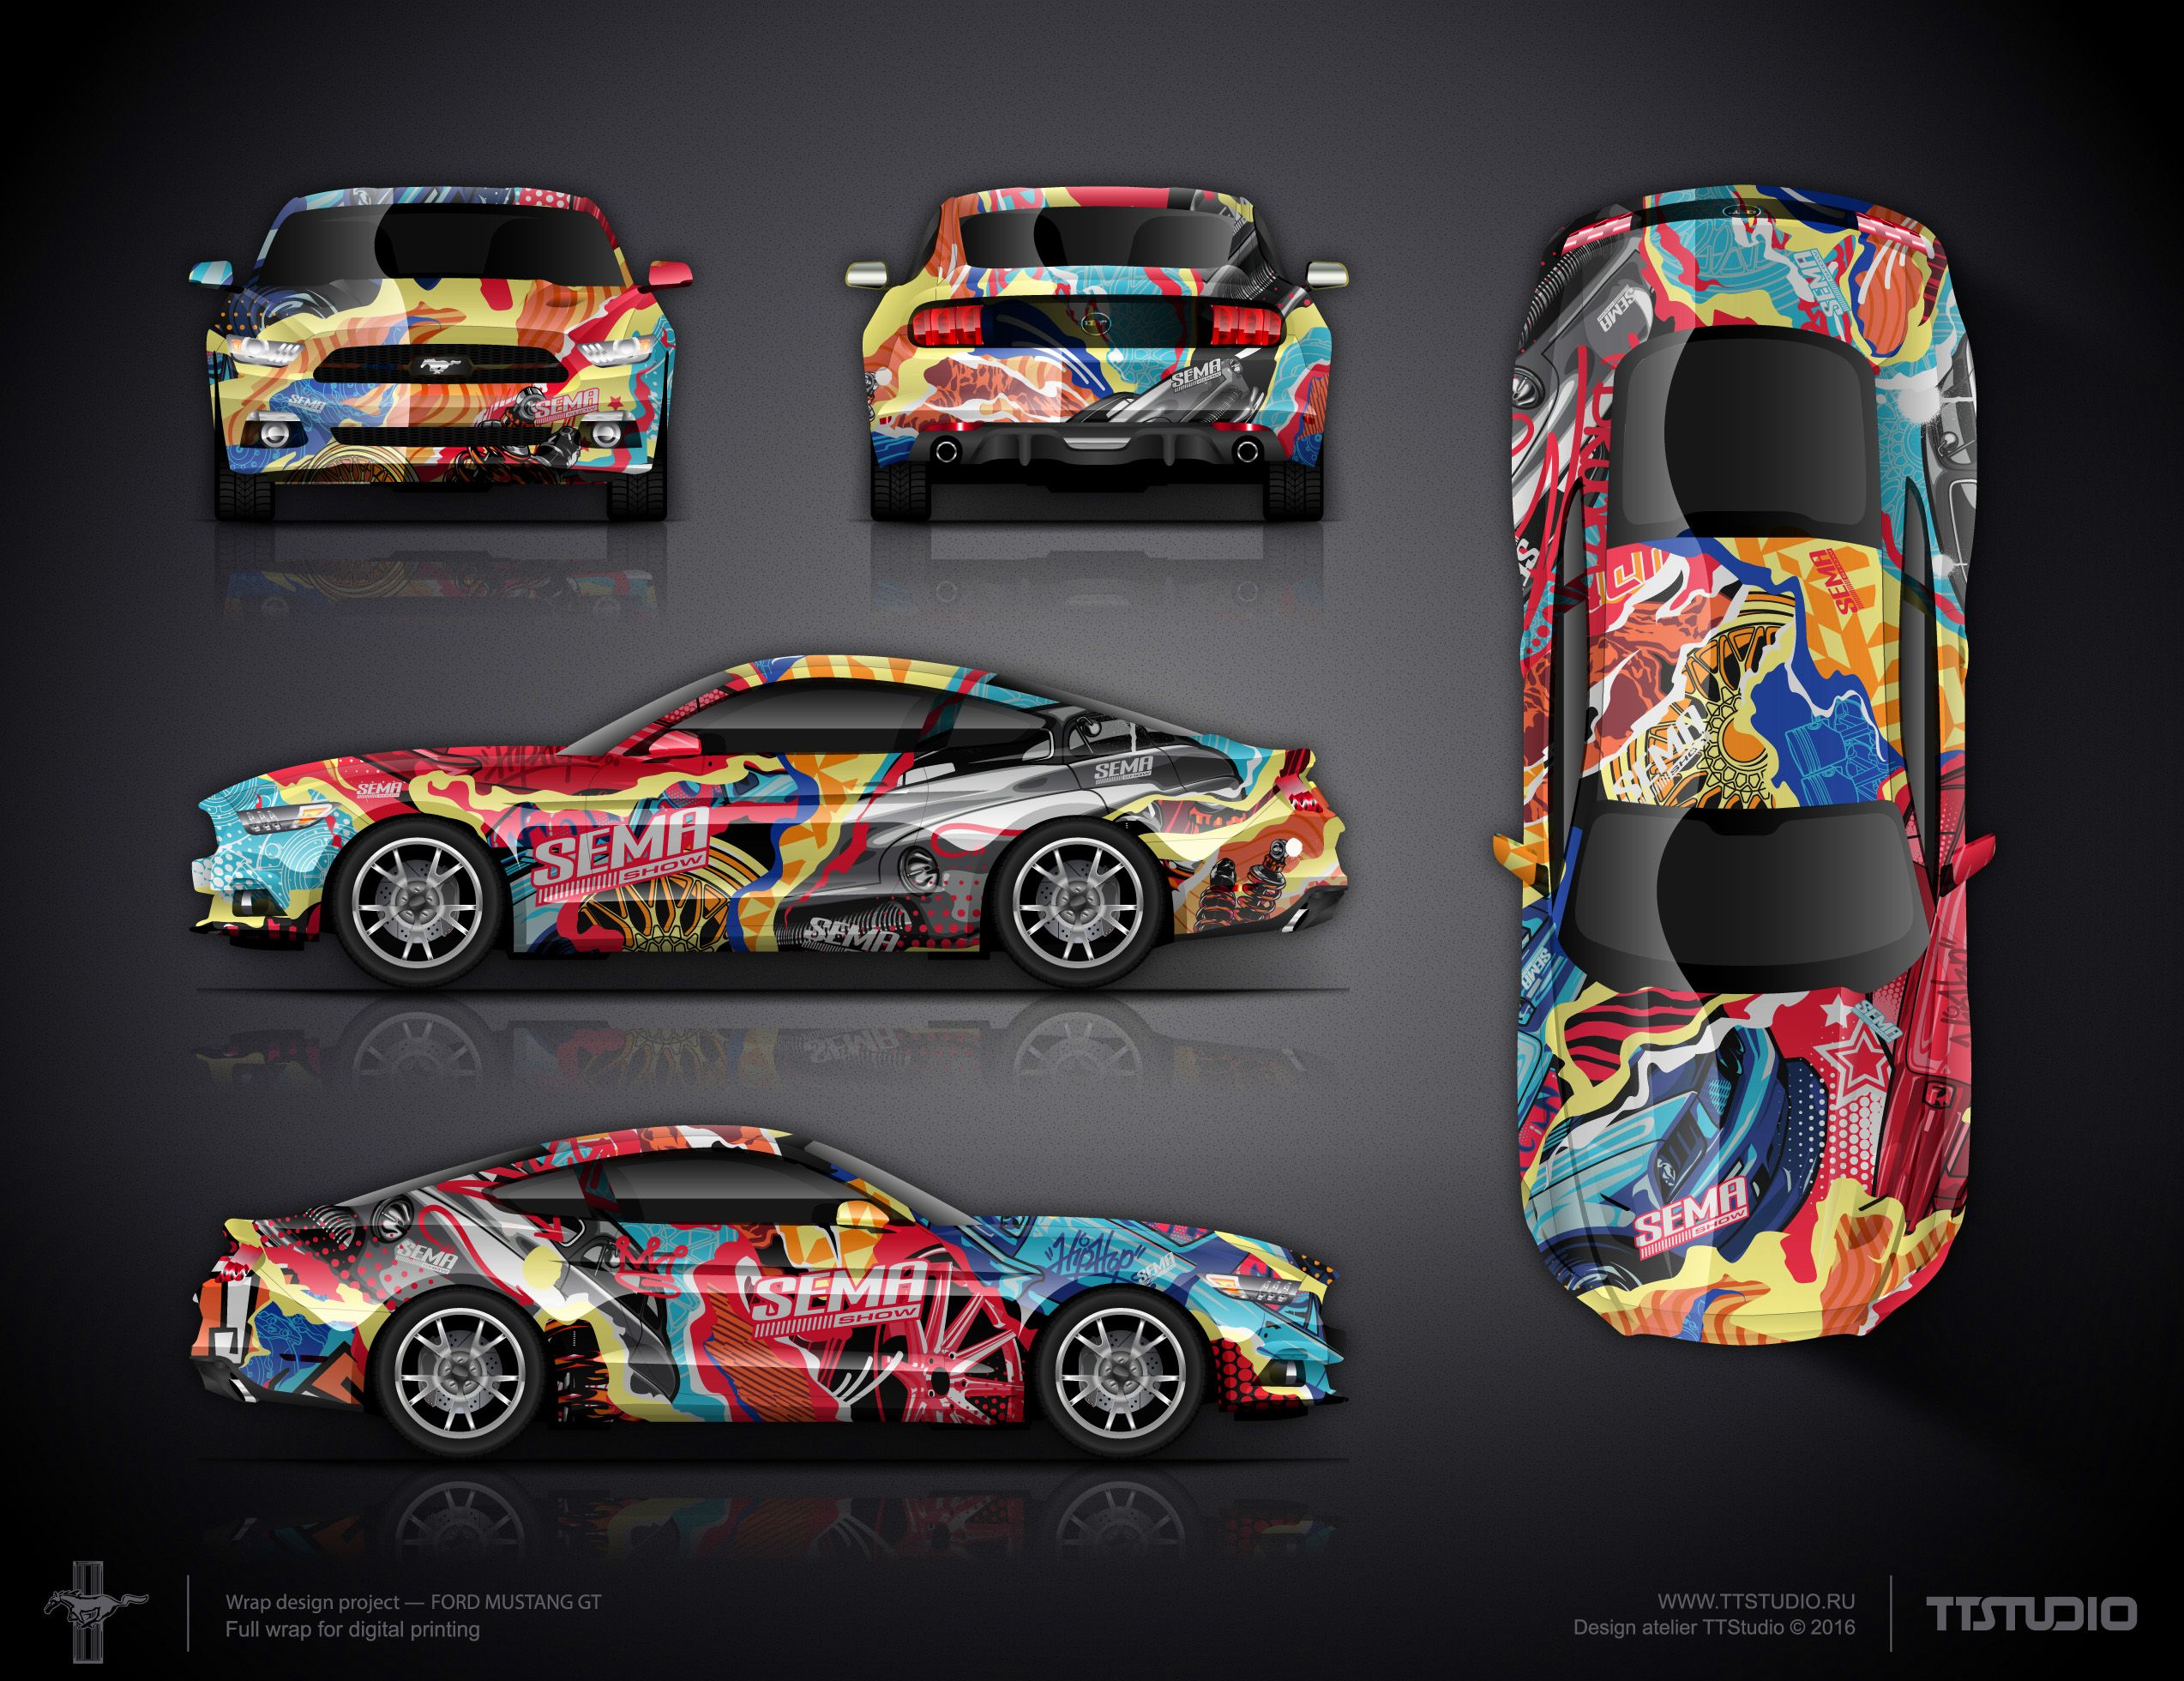 Design car wrap - Our Design Adapted For All Sides For The Big Reveal Wrap Design Challenge